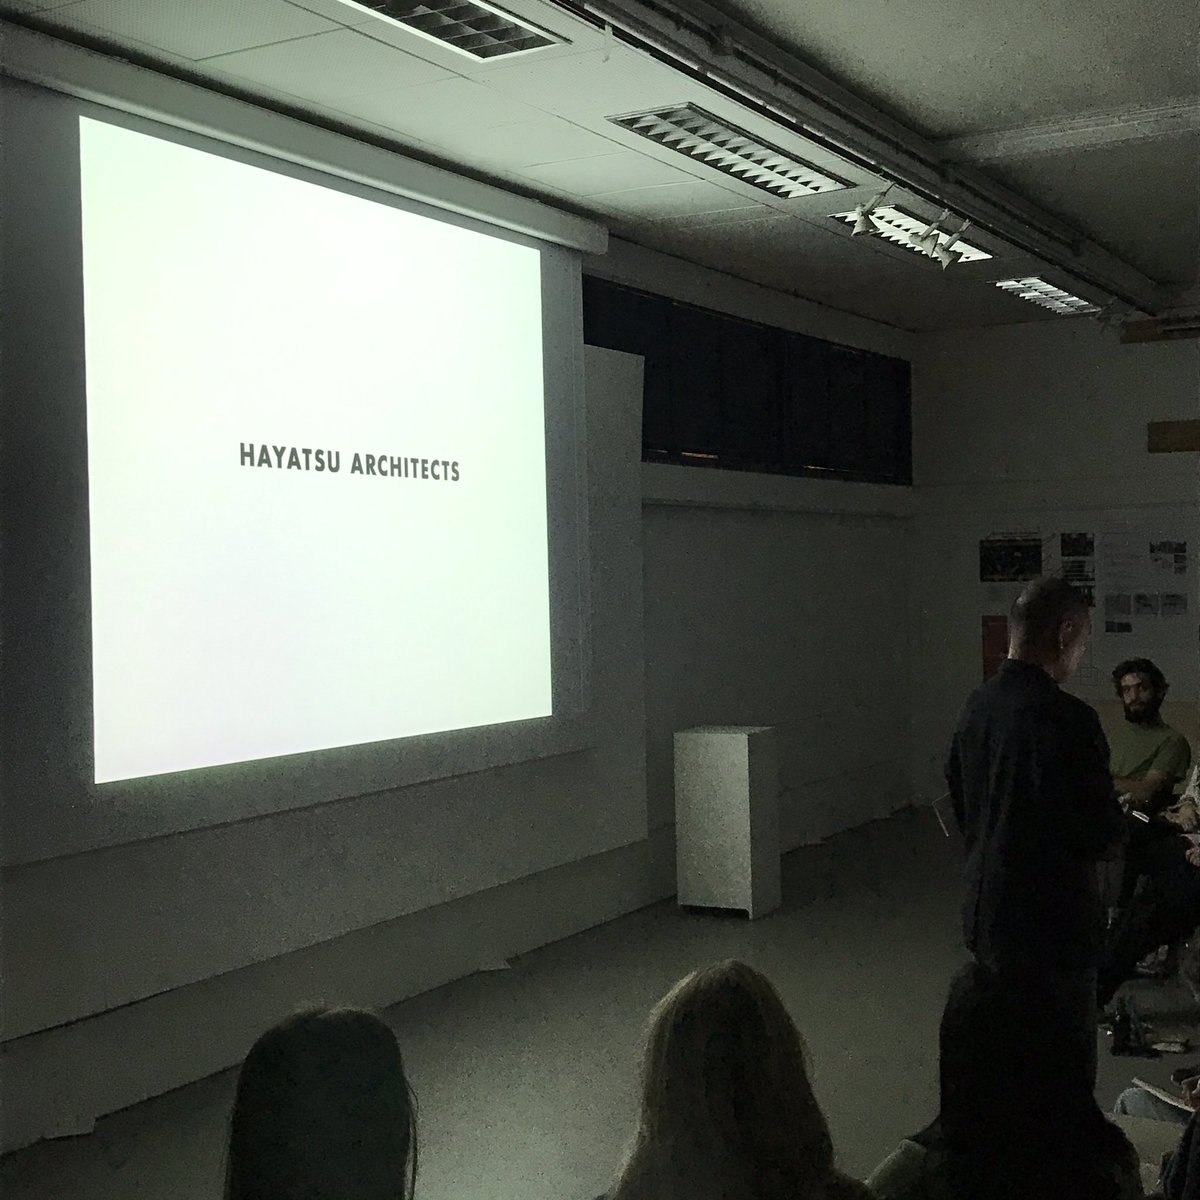 The Savage Mind: @takeshihayatsu introduces the work of his practice, the fifth in our series of Public Lectures @uniofbrighton @artsbrighton #SoAD